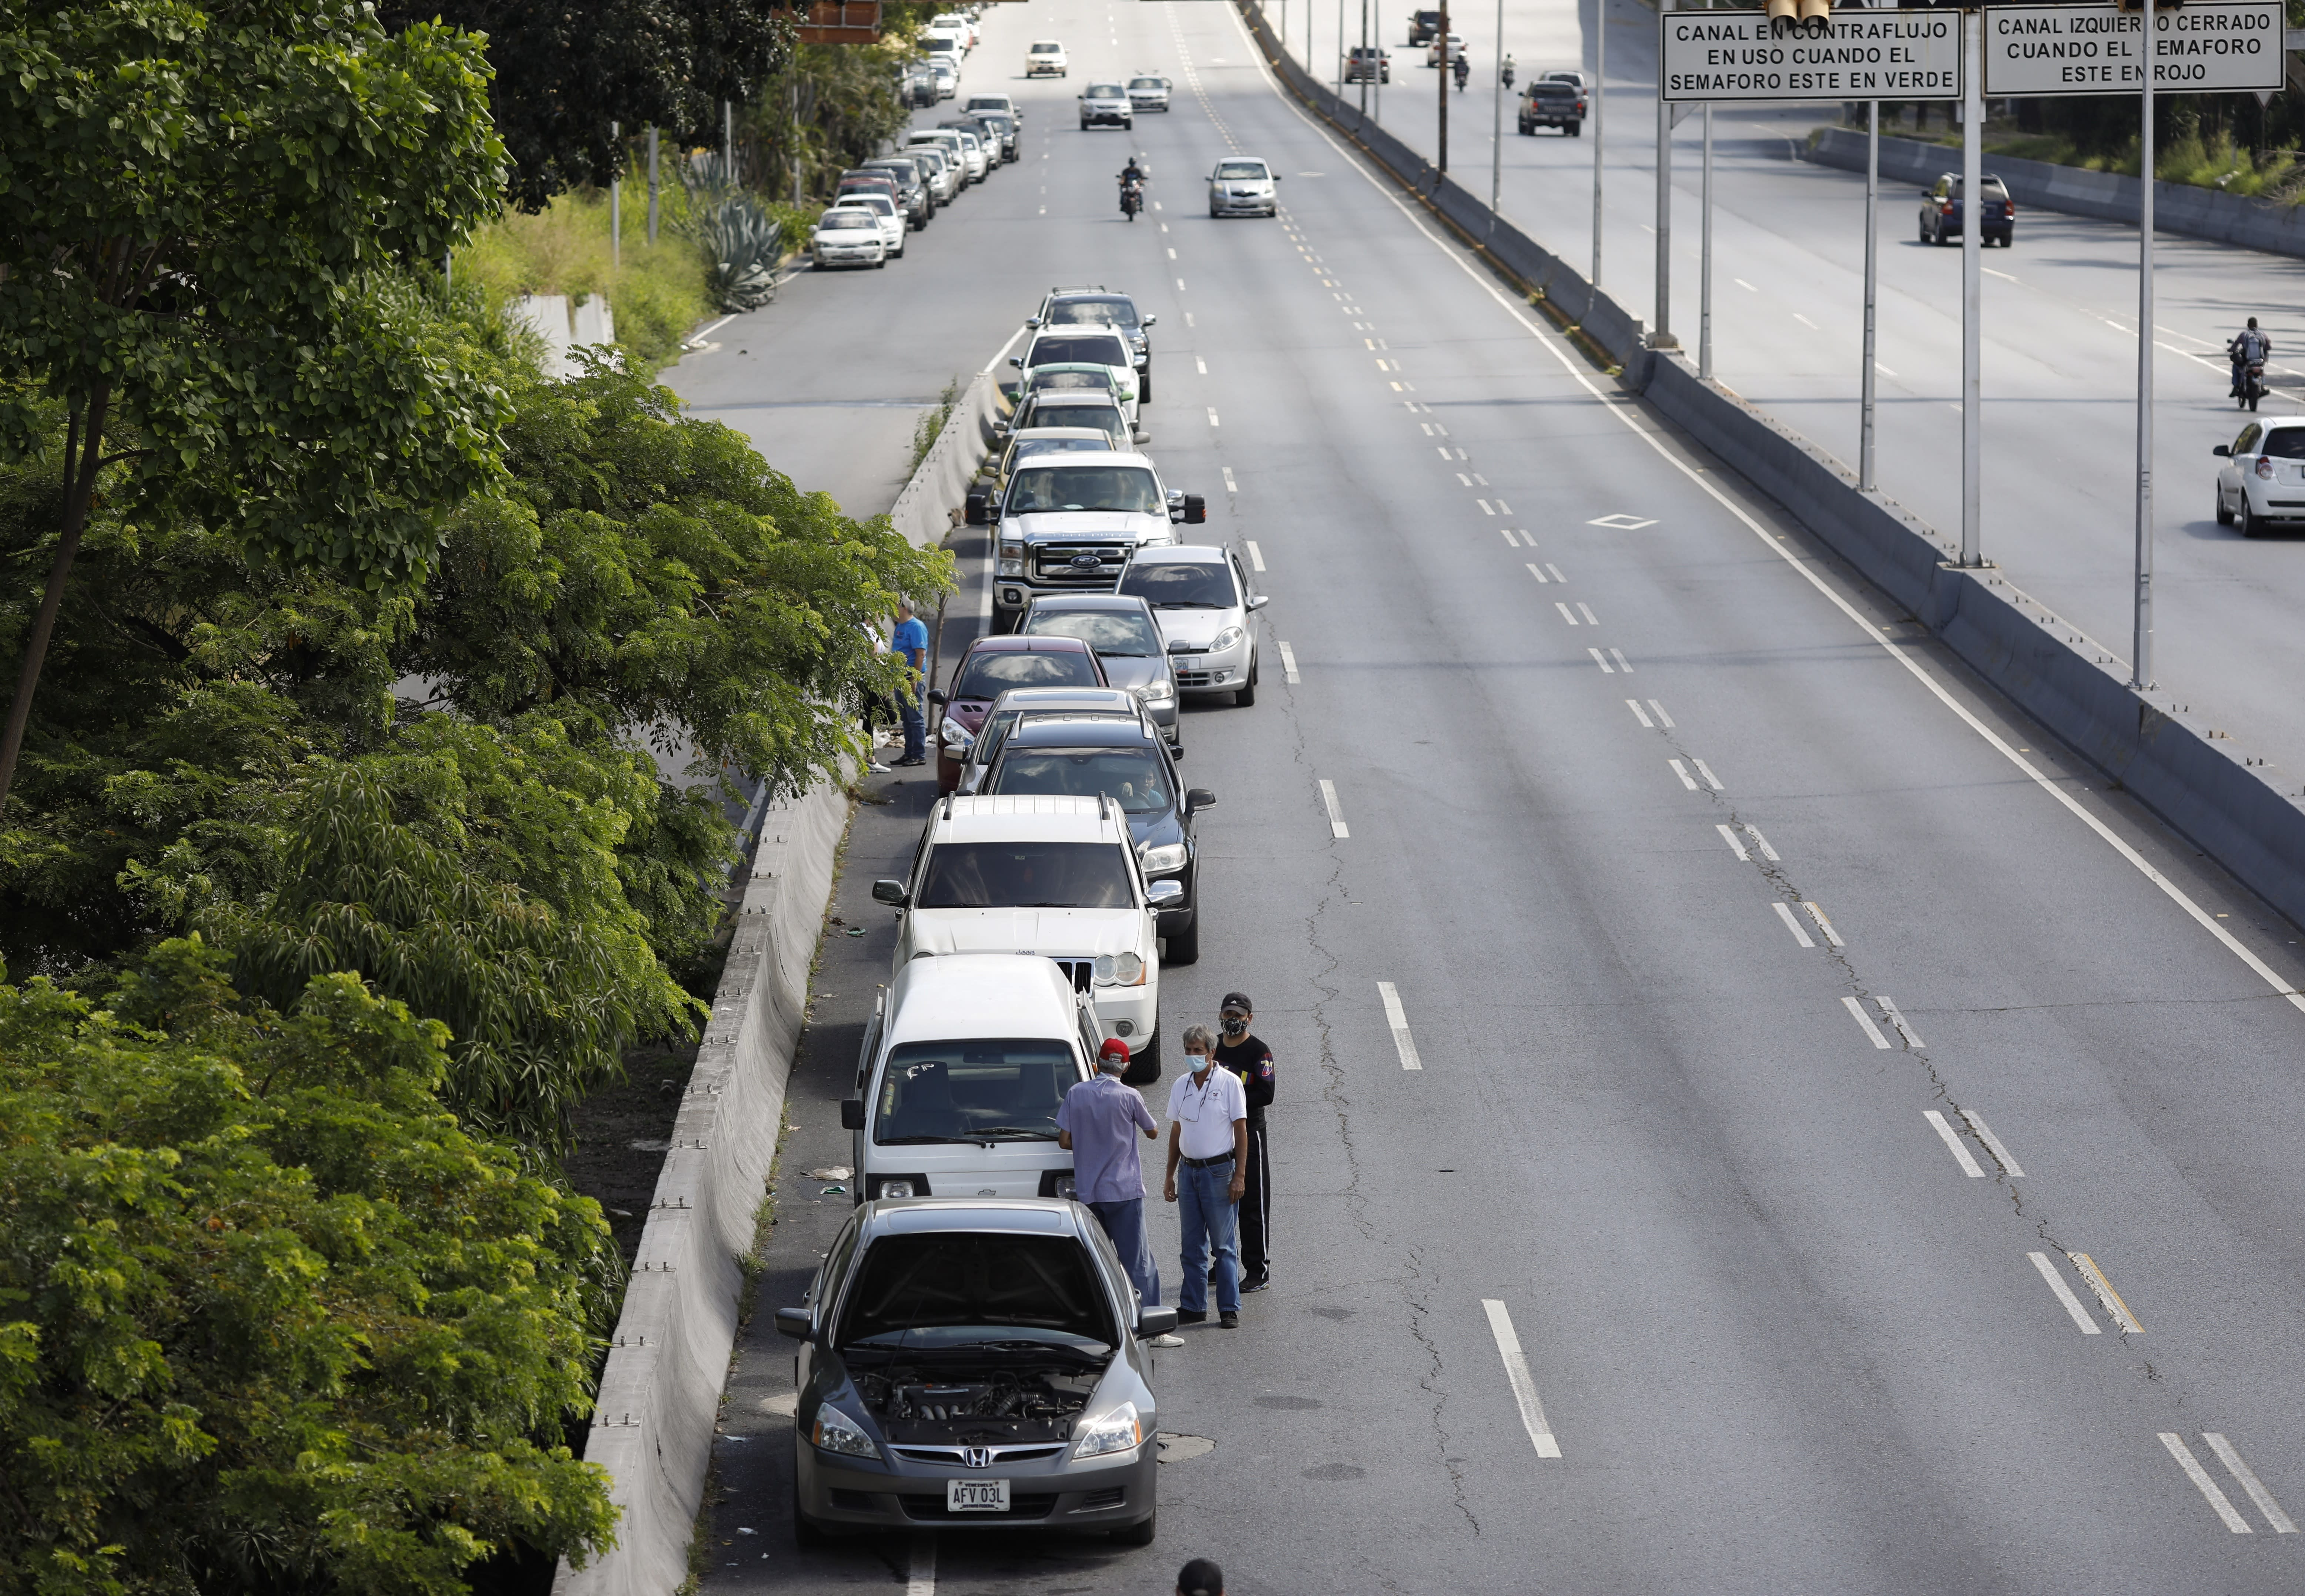 Men stand alongside vehicles lined up to enter a gas station during a nation-side fuel crunch, in Caracas, Venezuela, Wednesday, Sept 30, 2020. (AP Photo/Ariana Cubillos)